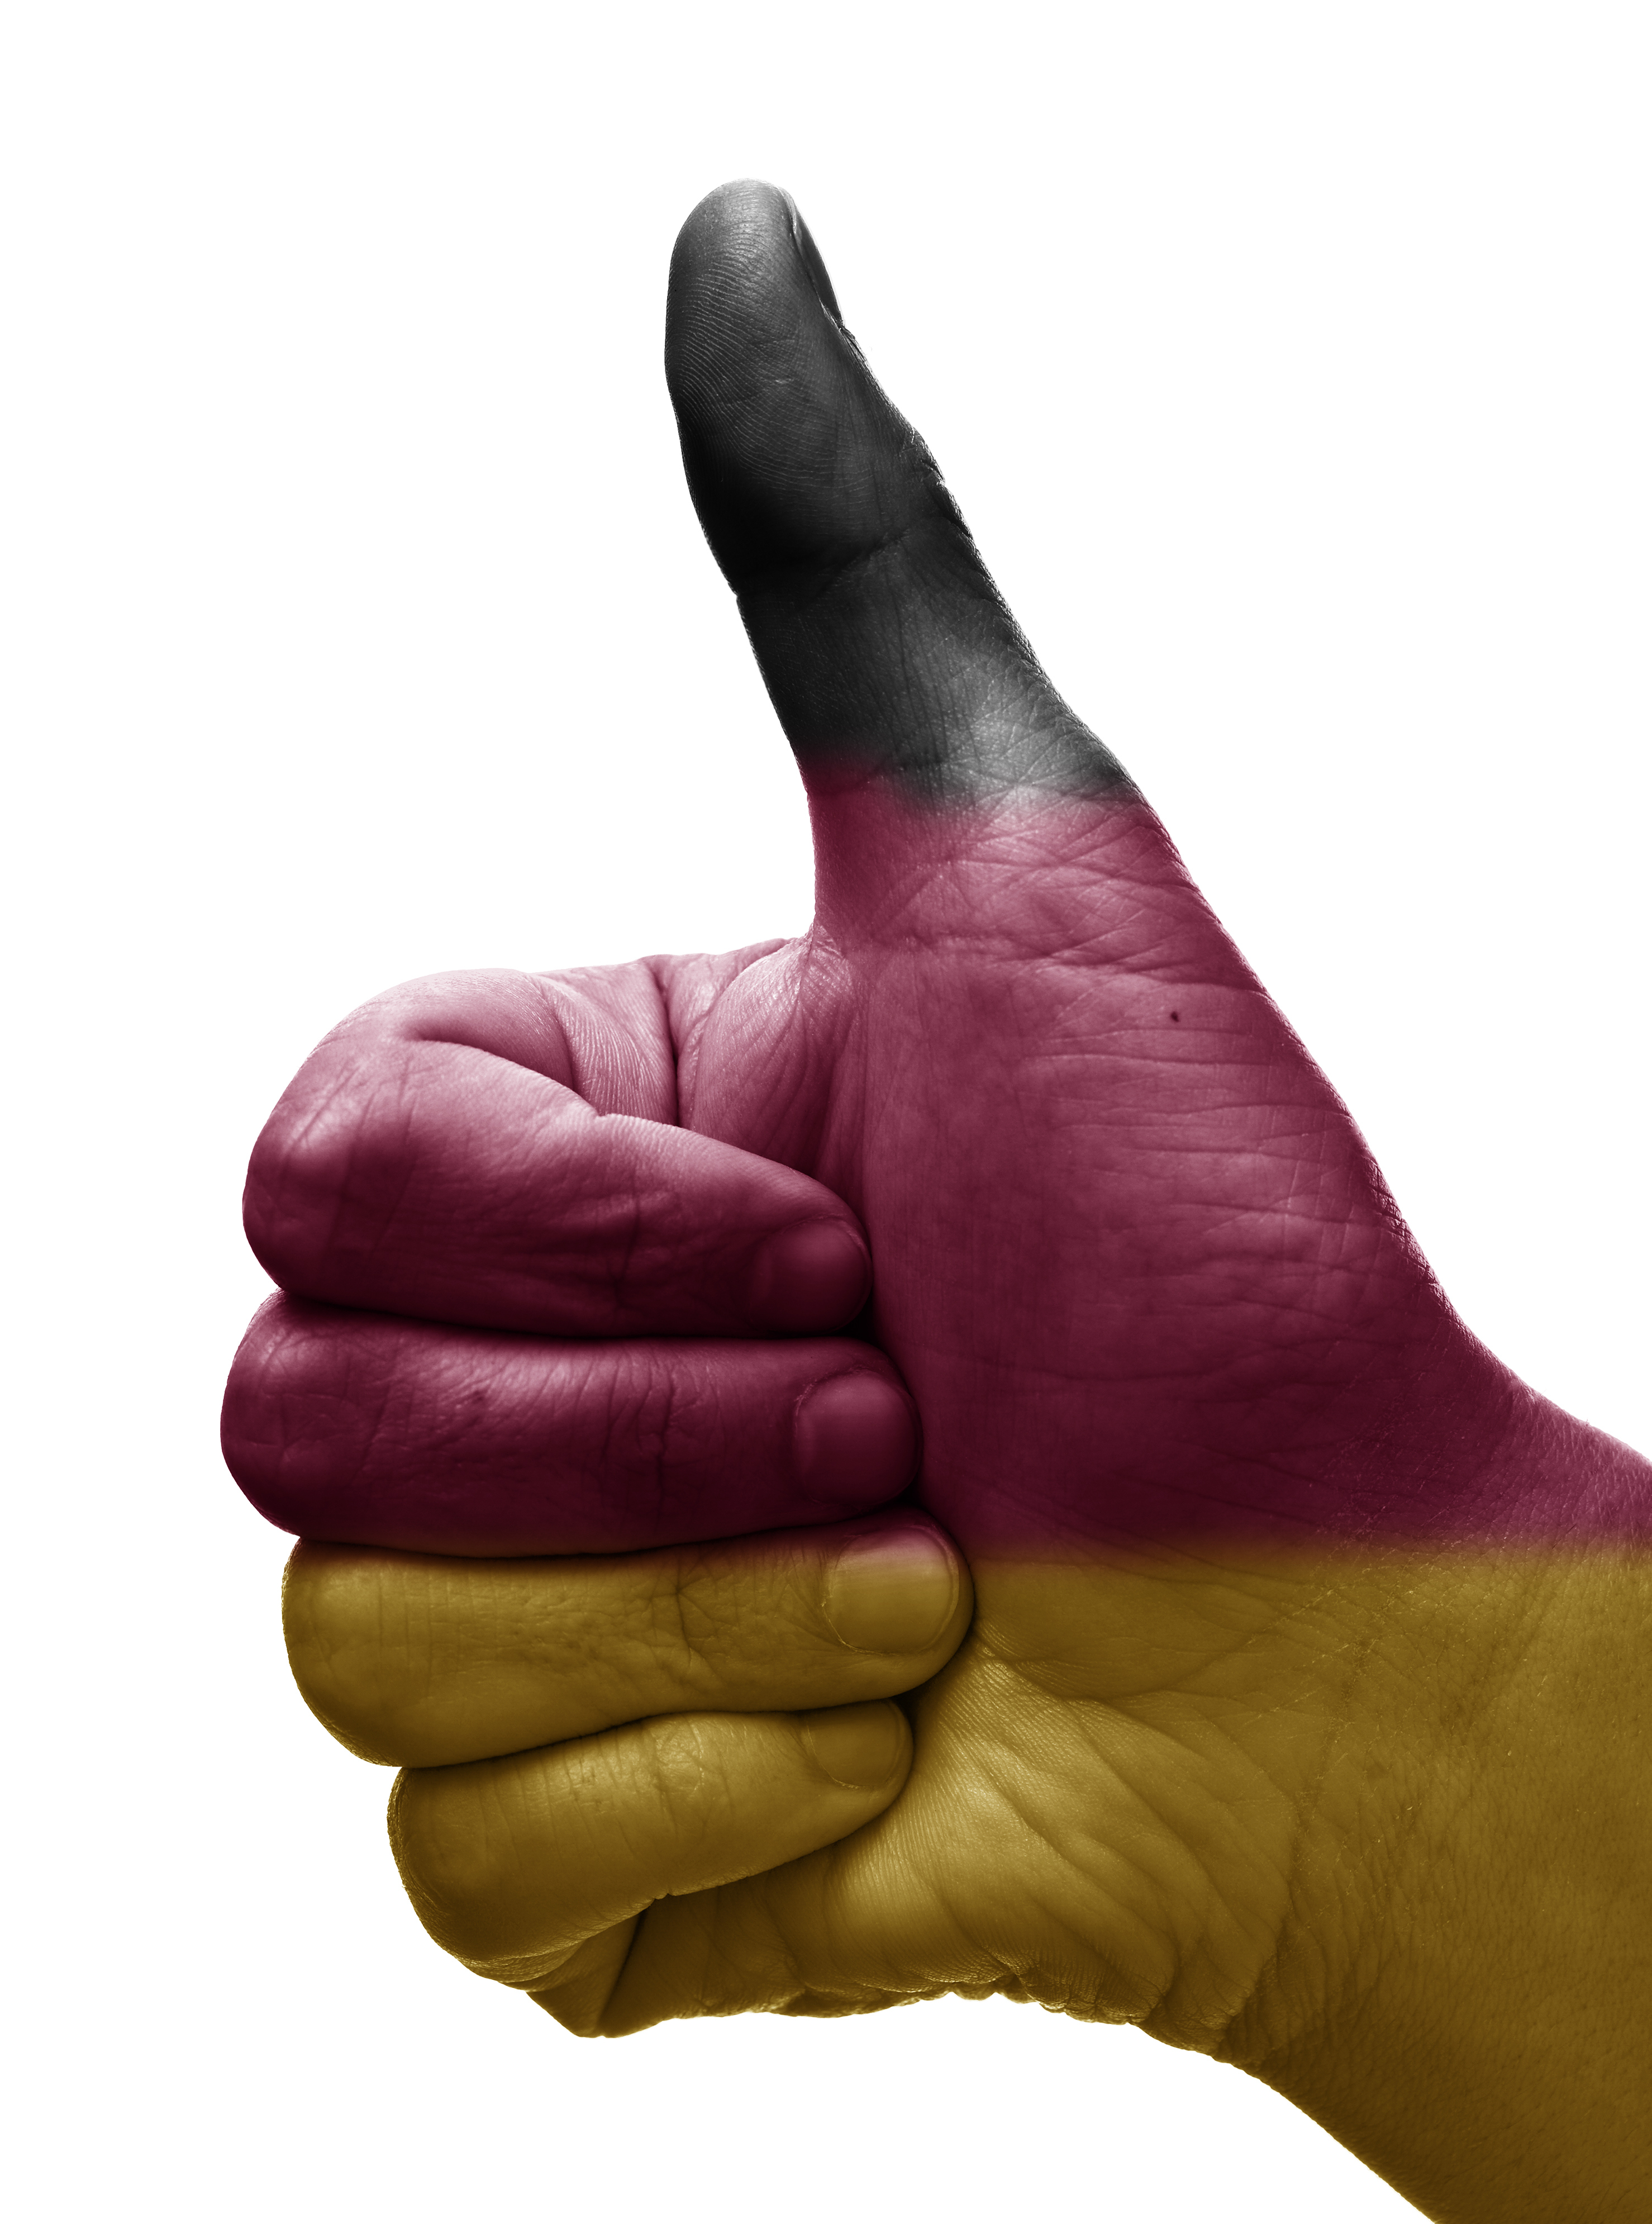 Thumbs up, Germany.